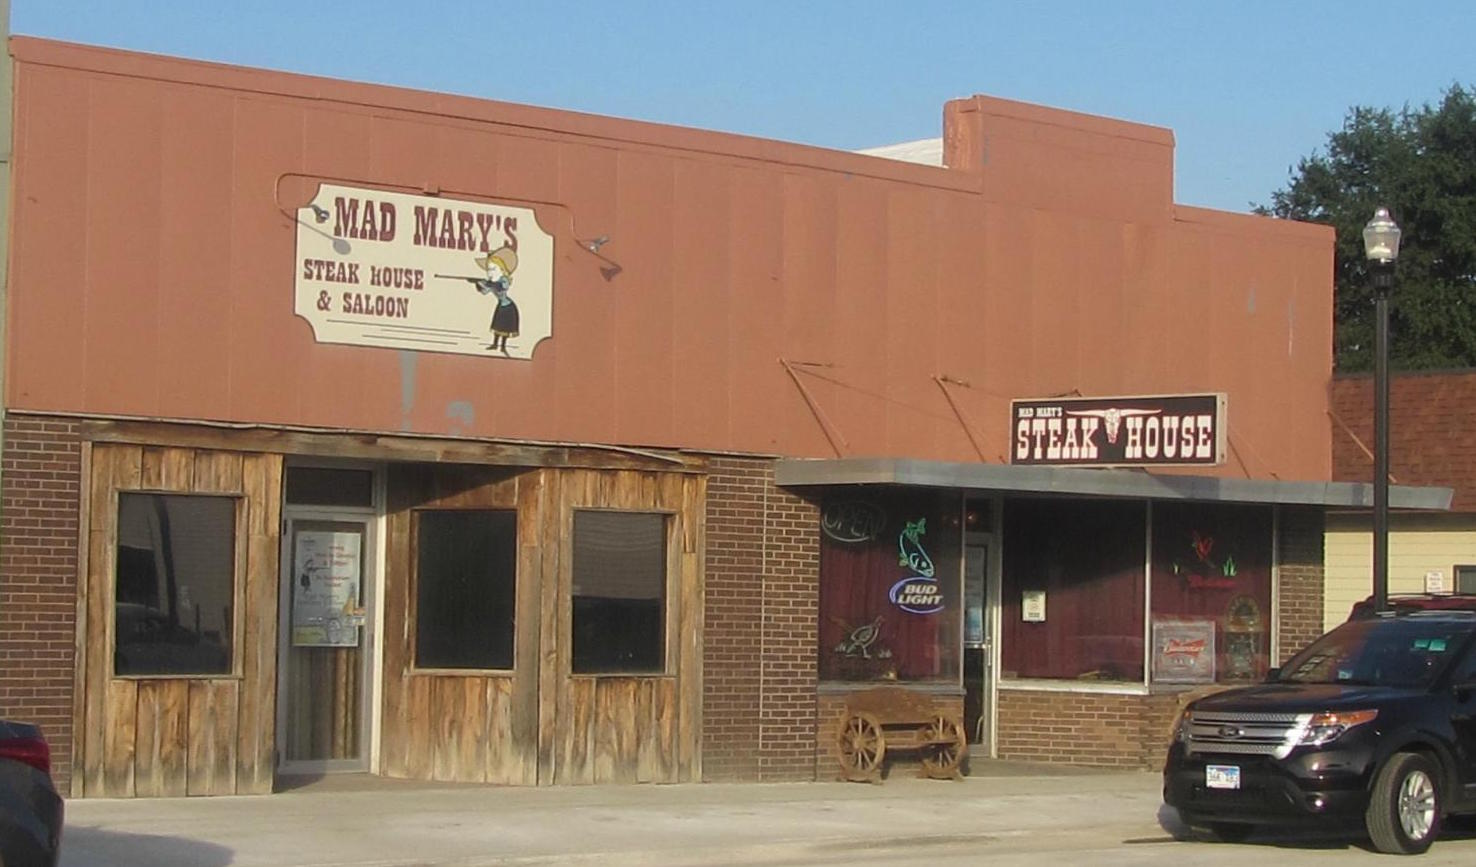 Mad Mary's Steakhouse And Saloon In South Dakota Serves Up ...